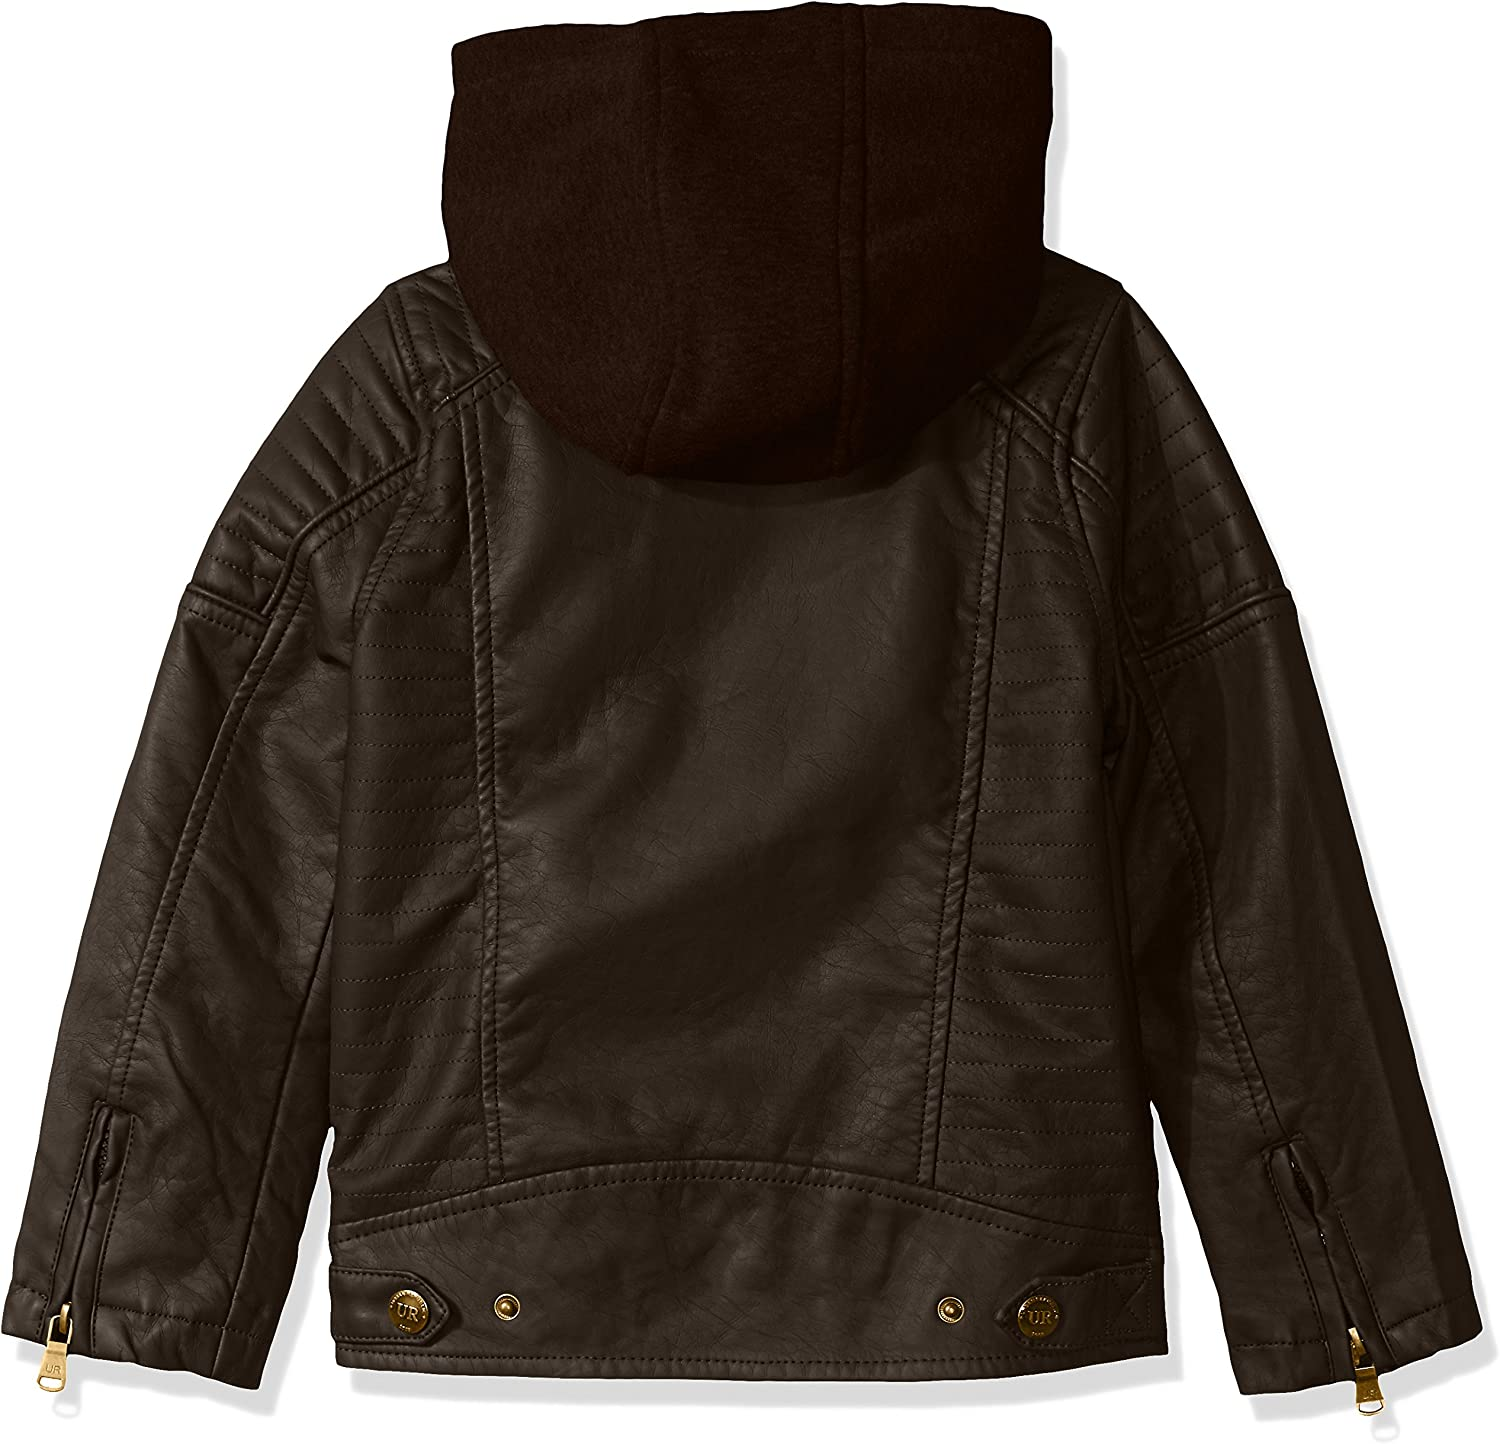 URBAN REPUBLIC boys Faux Leather Jacket With Fleece Lined Hood